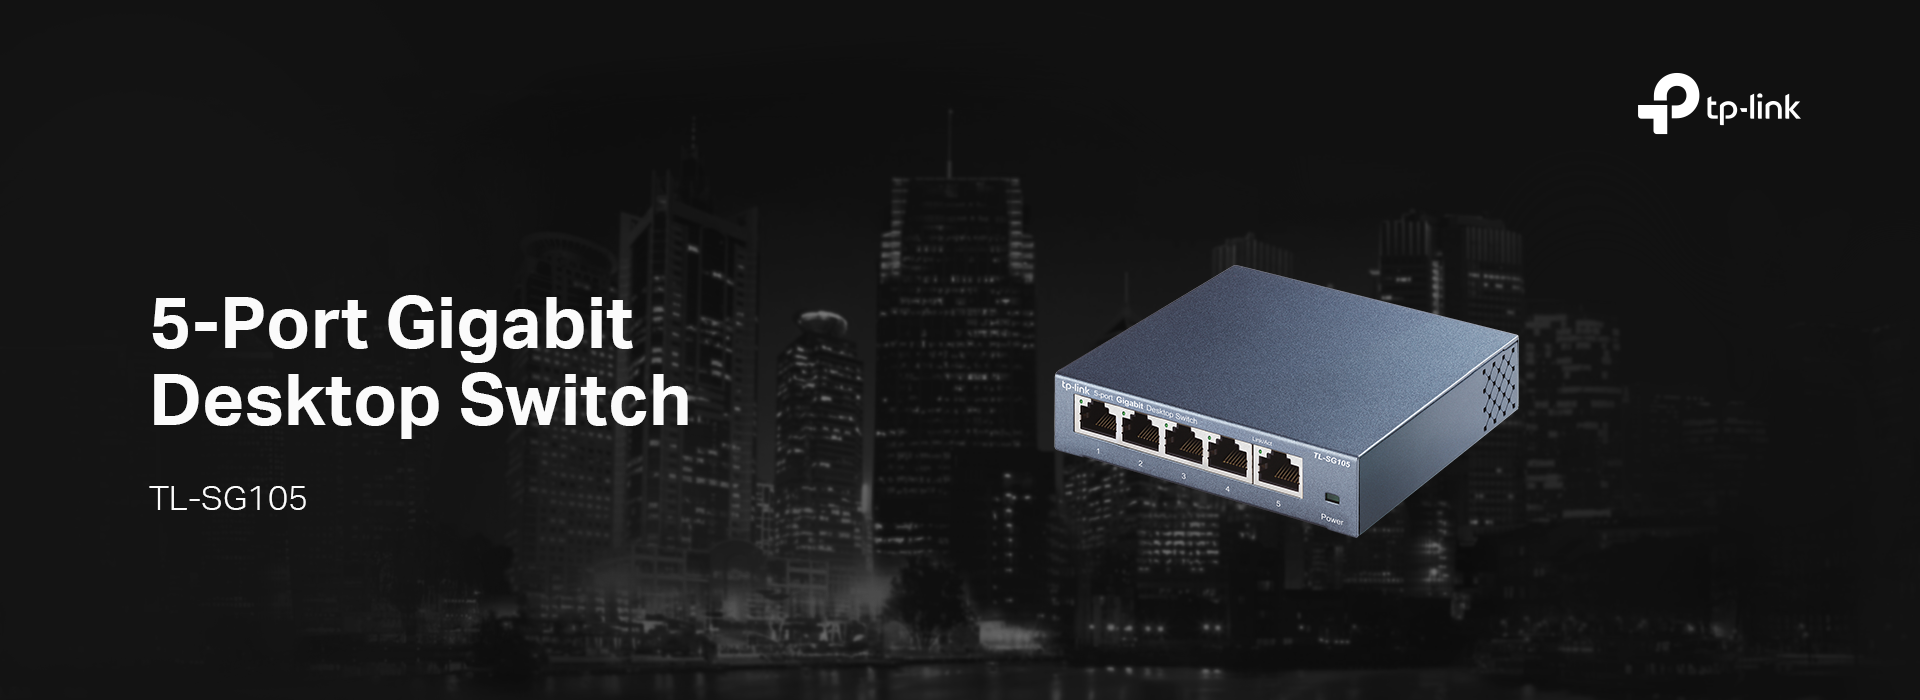 TL-SG105: 5-Port Gigabit Desktop Switch